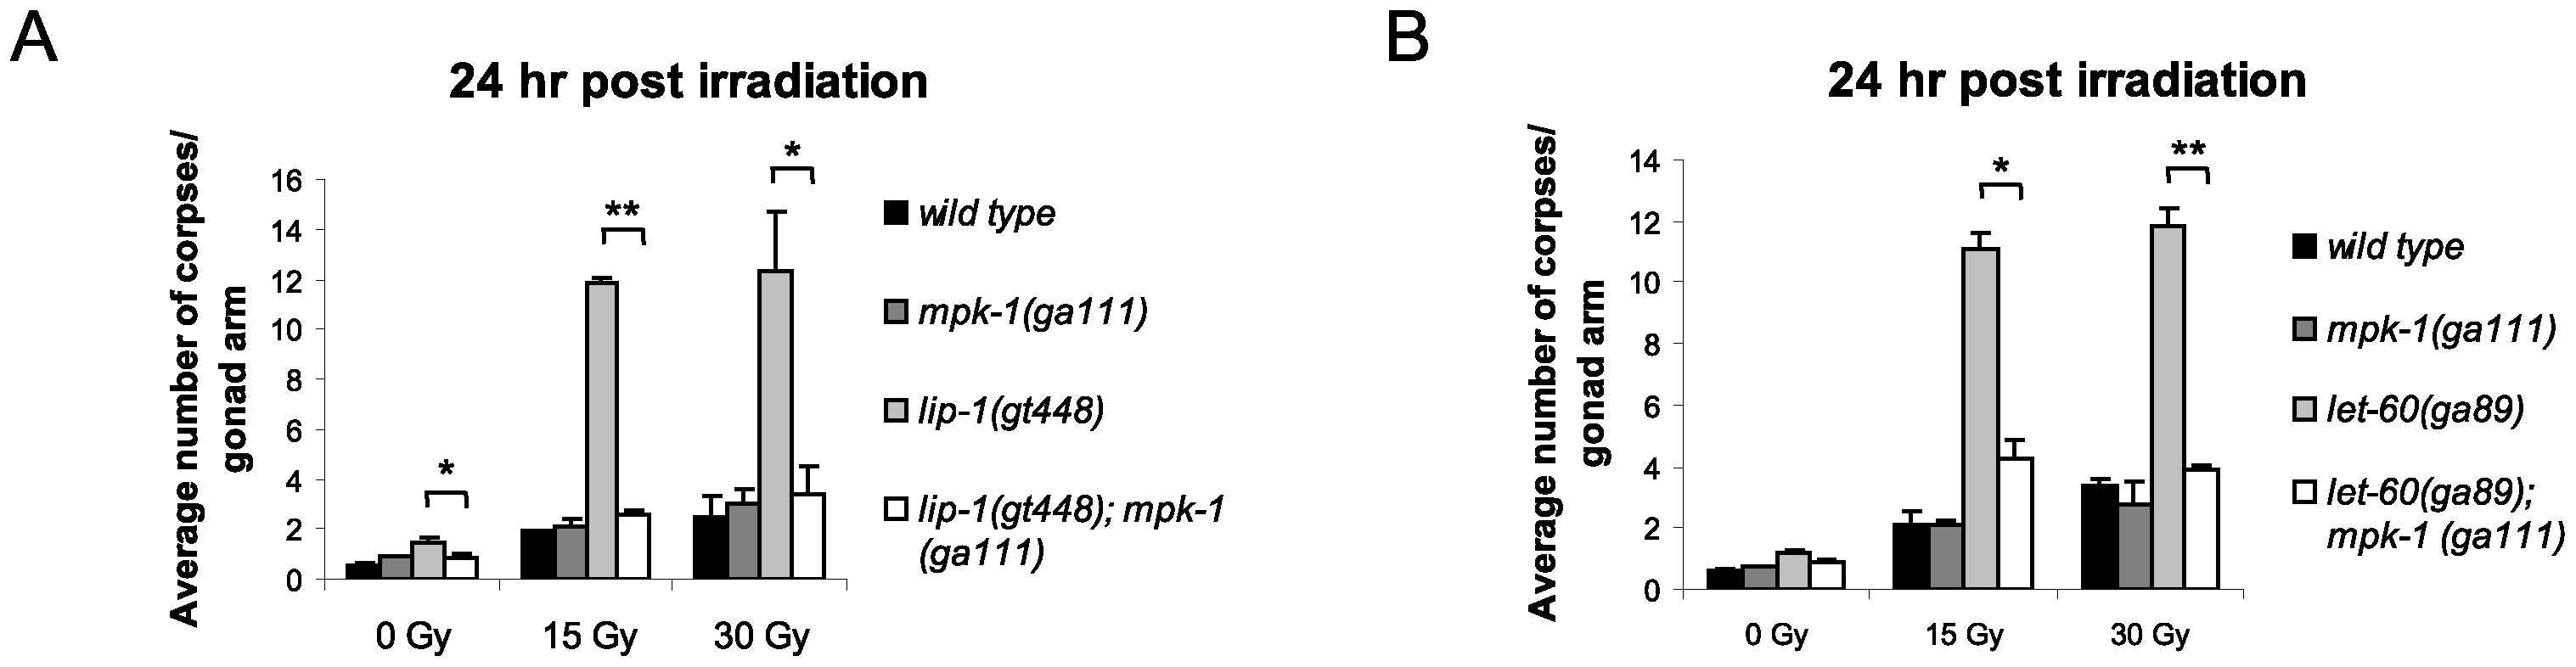 The enhanced apoptosis in <i>lip-1(gt448)</i> and <i>let-60(ga89)</i> mutant worms is due to enhanced MPK-1 activity.